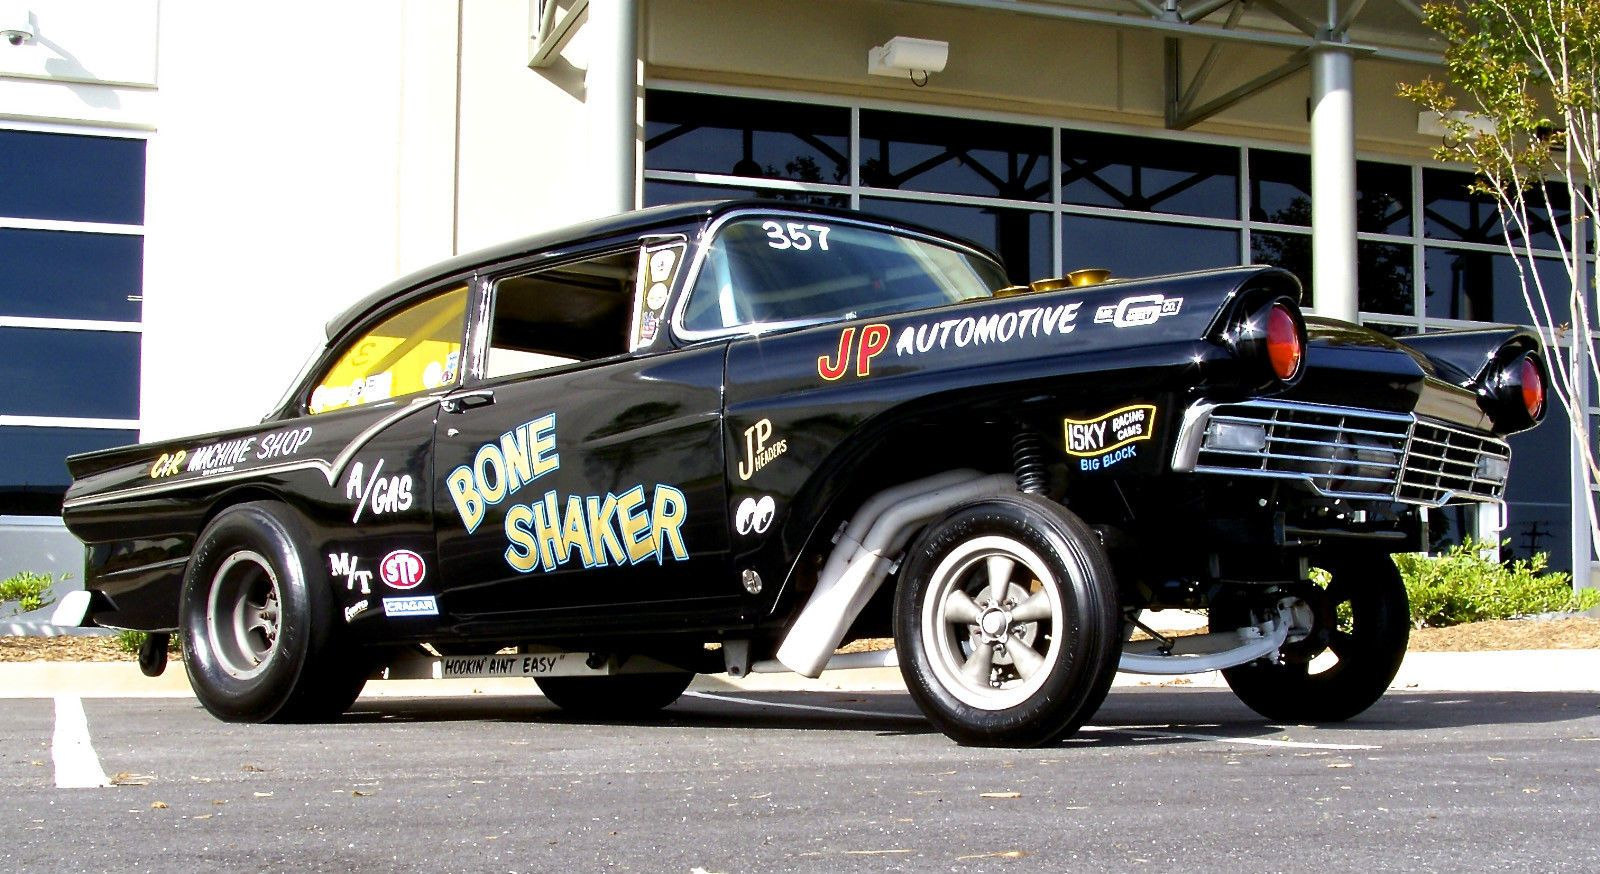 The Bone Shaker 1957 Ford Gasser Is For Sale! Injected Boss 429 ...